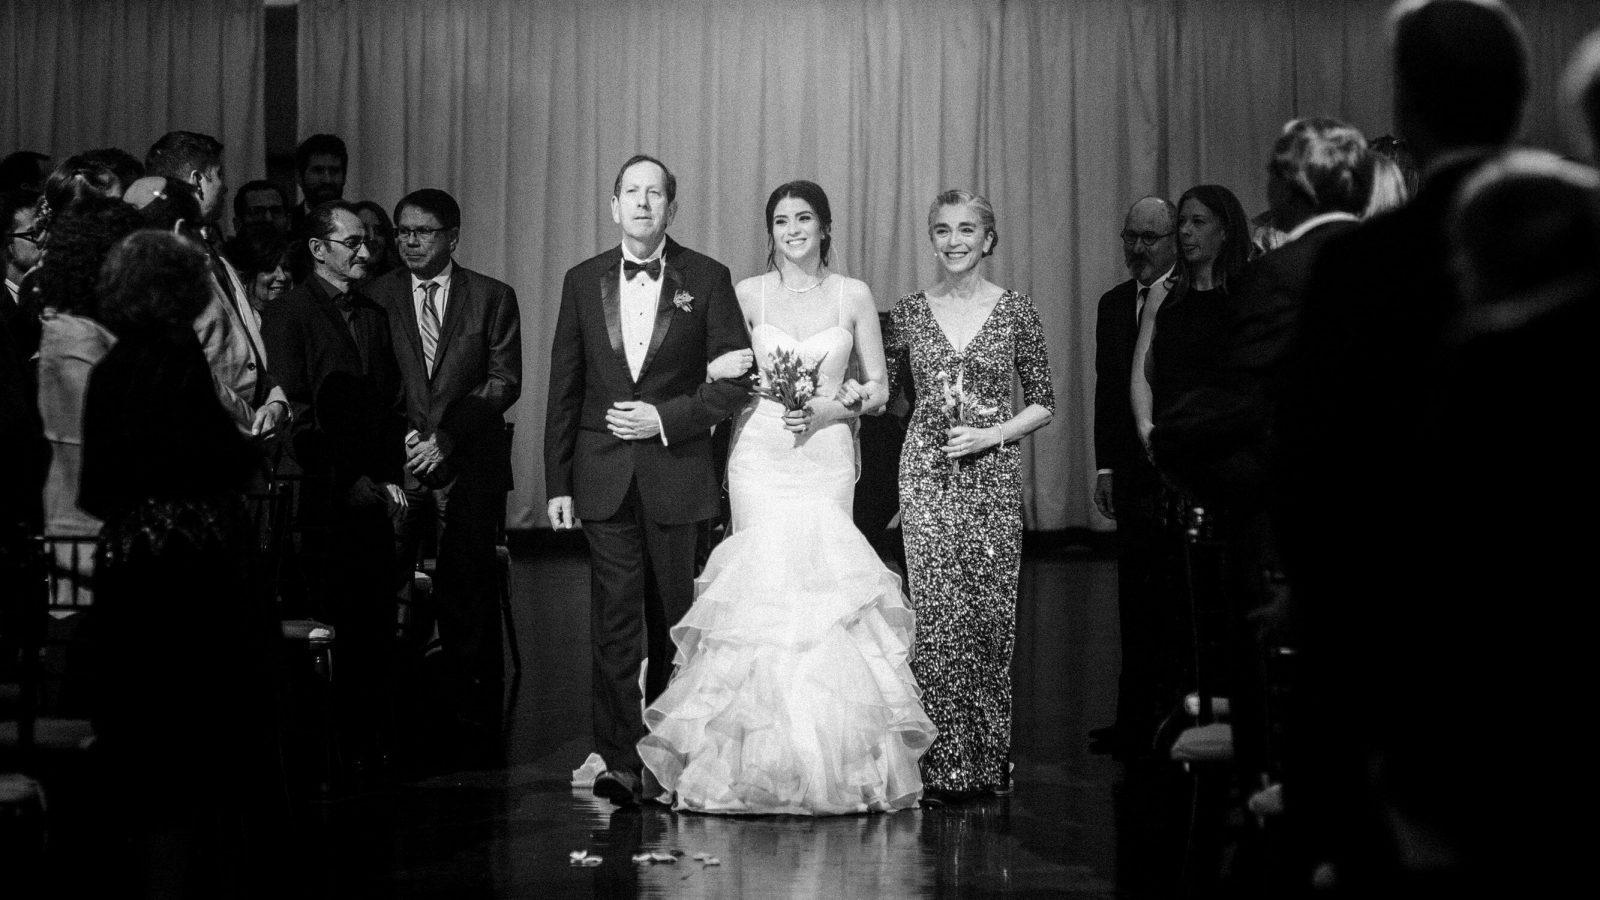 wedding-vibiana-los-angeles-rosalie-david-rlddc6043